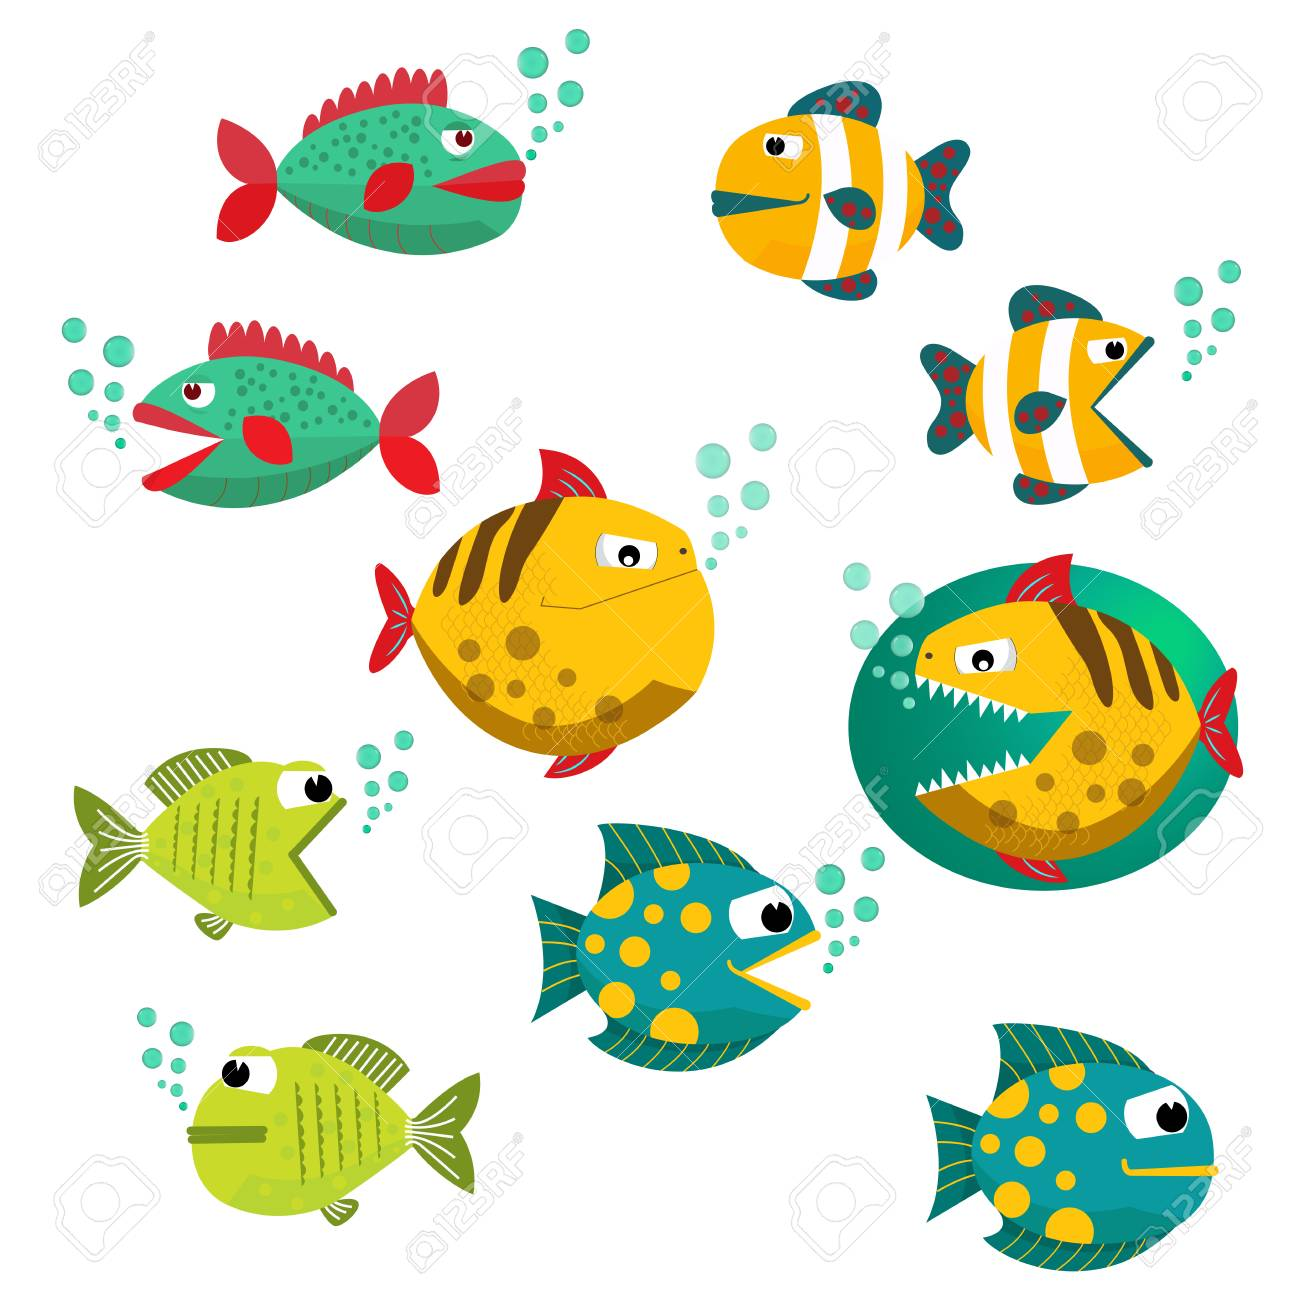 Cute Fish Vector Illustration Icons Set Fish Icons Isolated